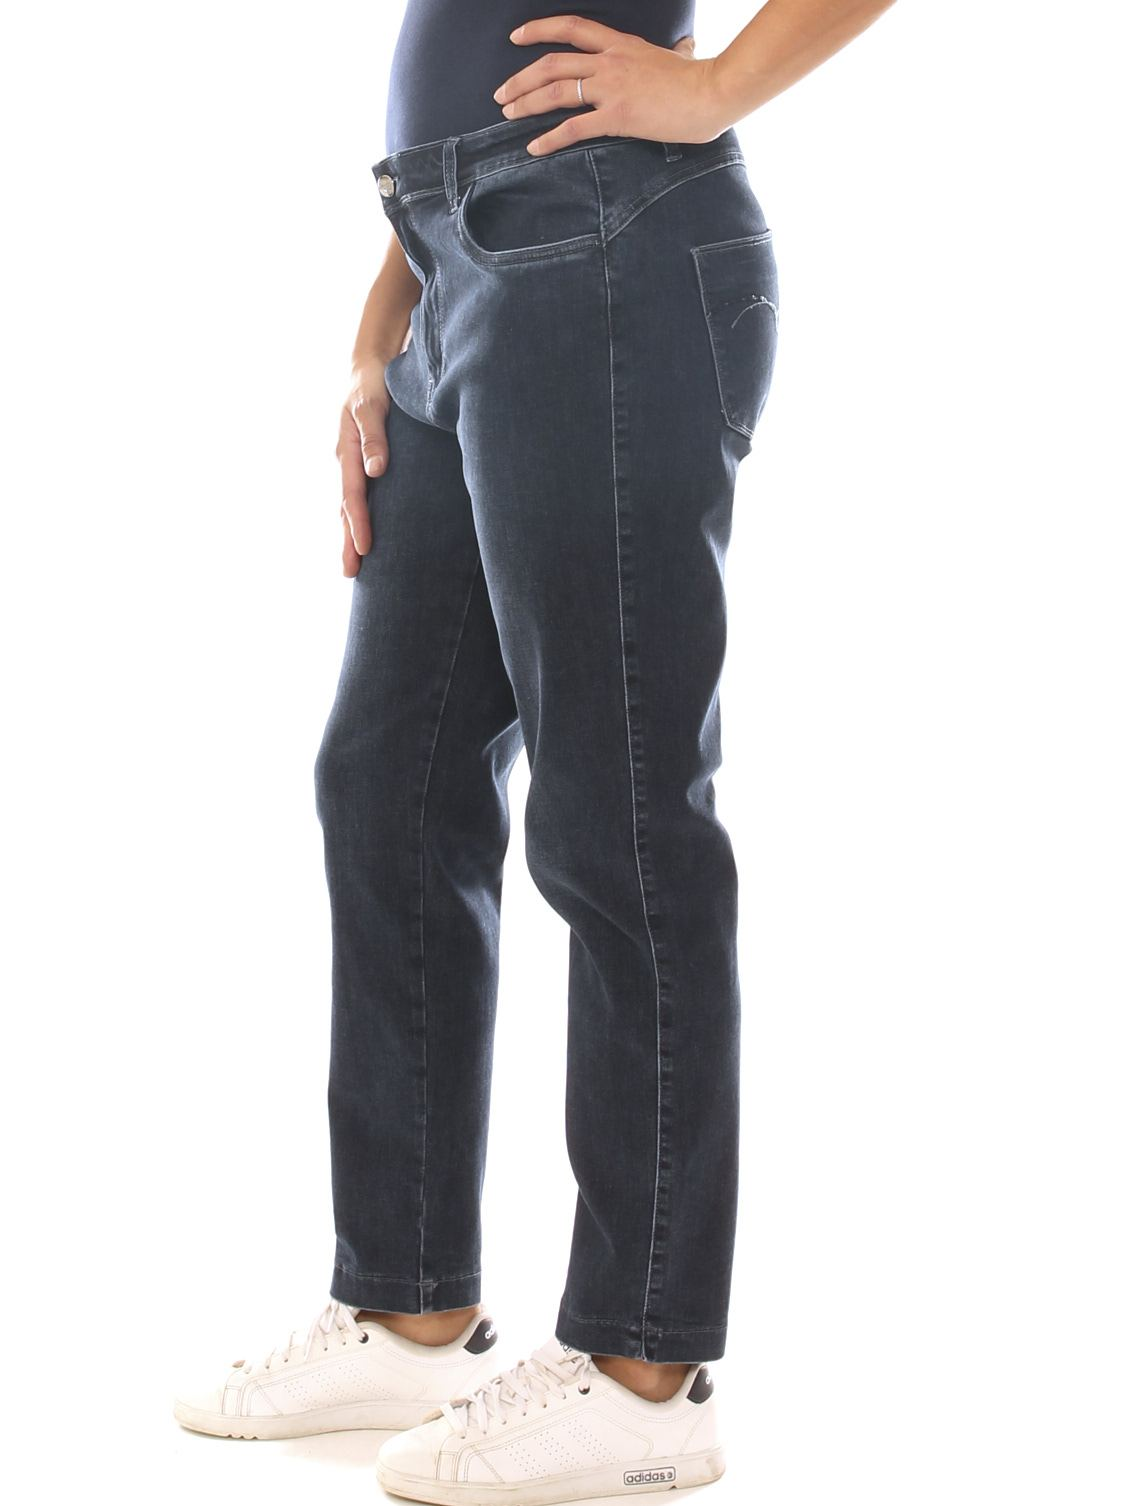 Jeans a sigaretta donna in denim stretch taglia conformata - Luanaromizi.com